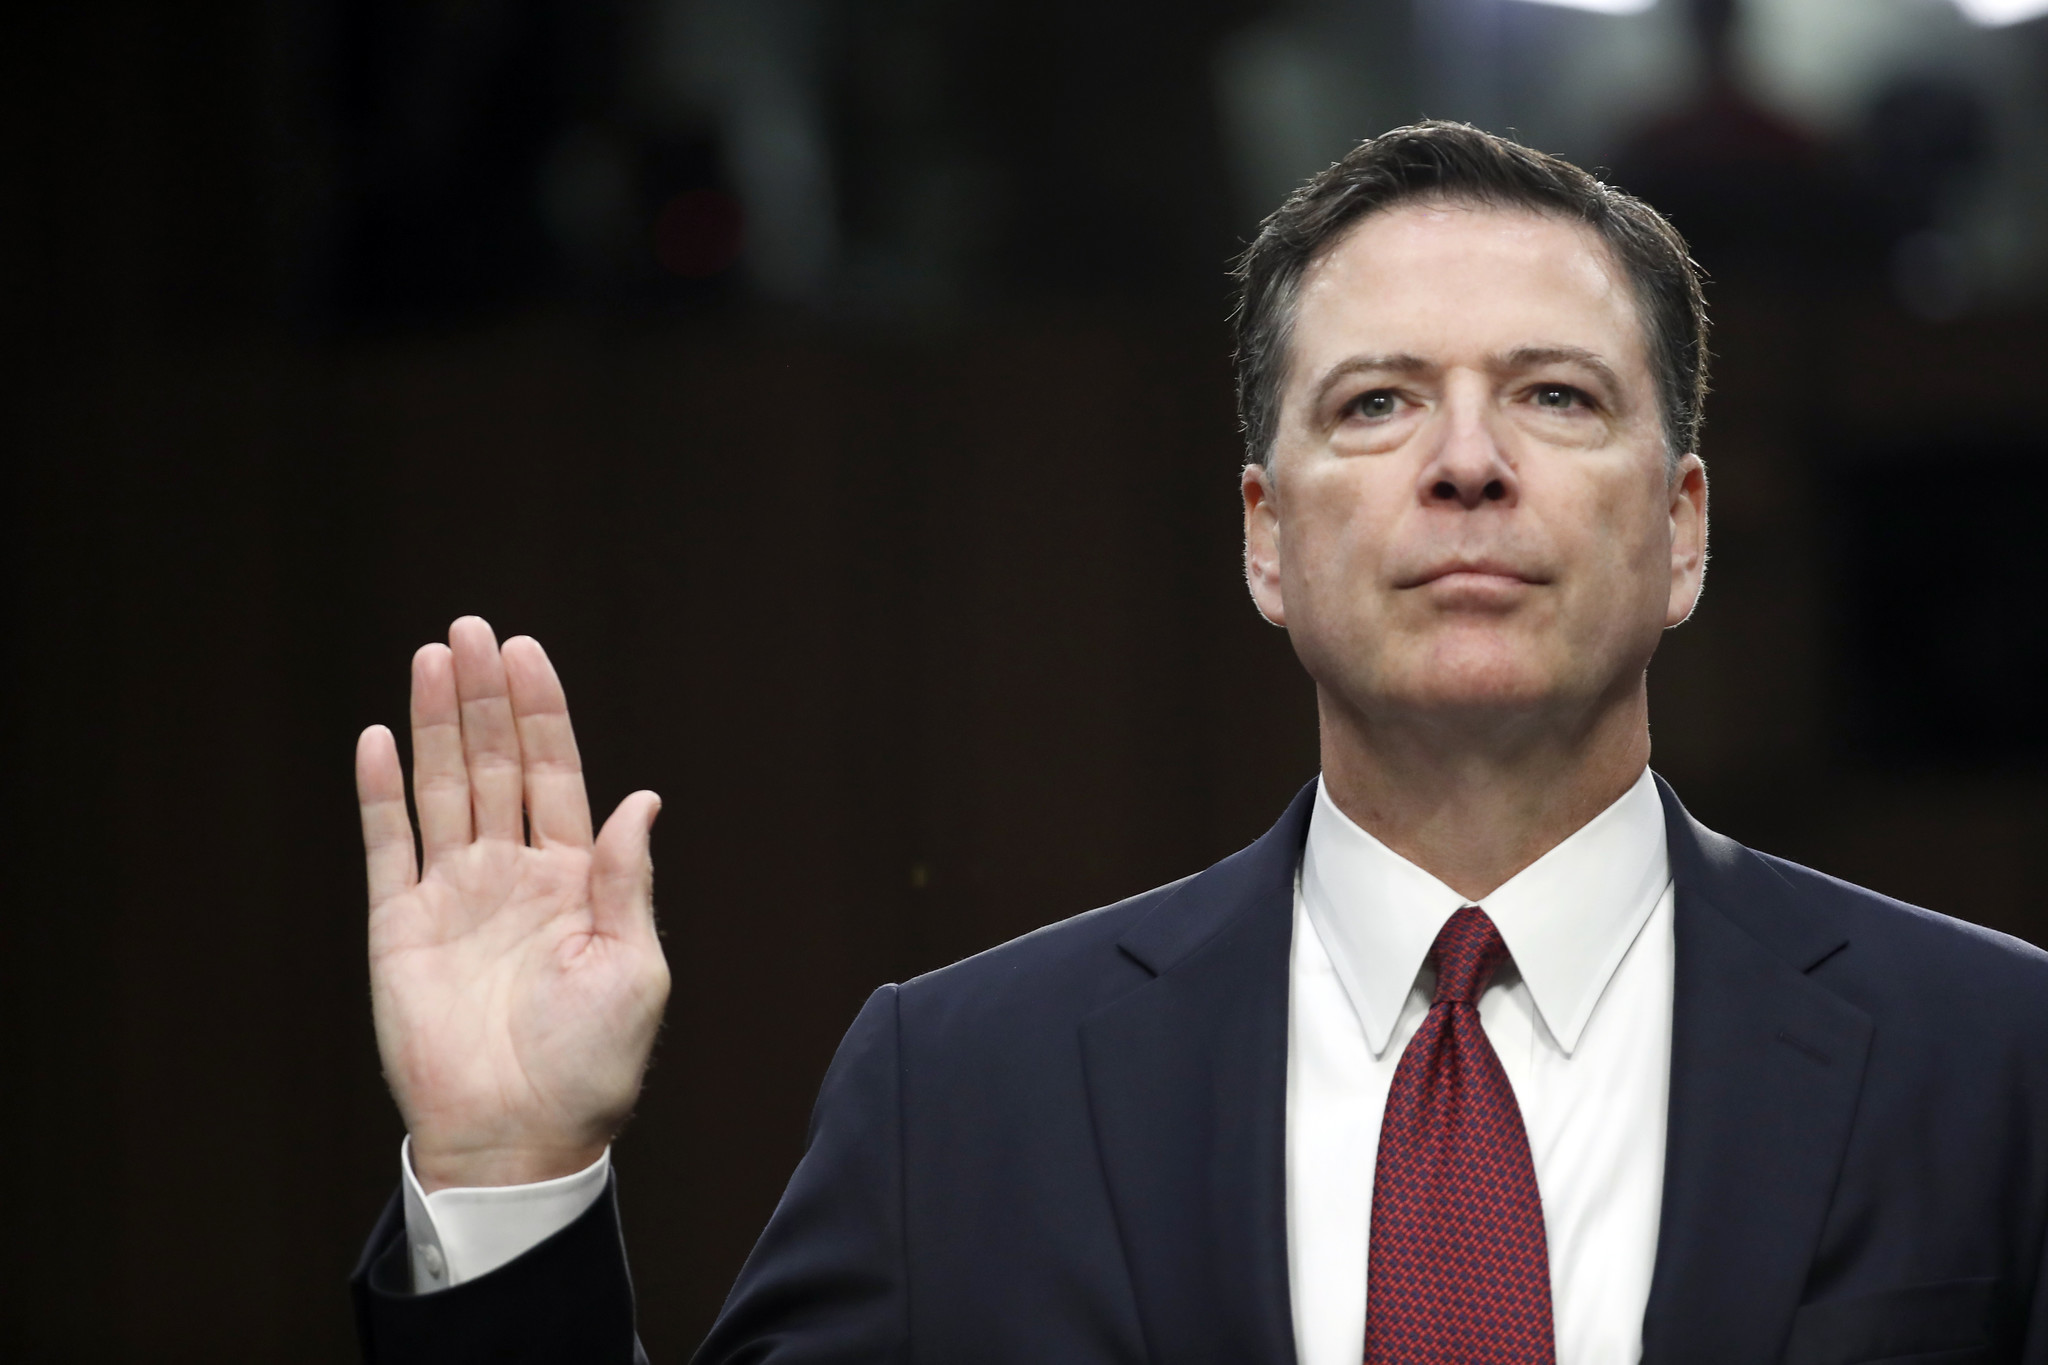 Former FBI Director James Comey is sworn in during a hearing before the Senate Select Committee on Intelligence in June.